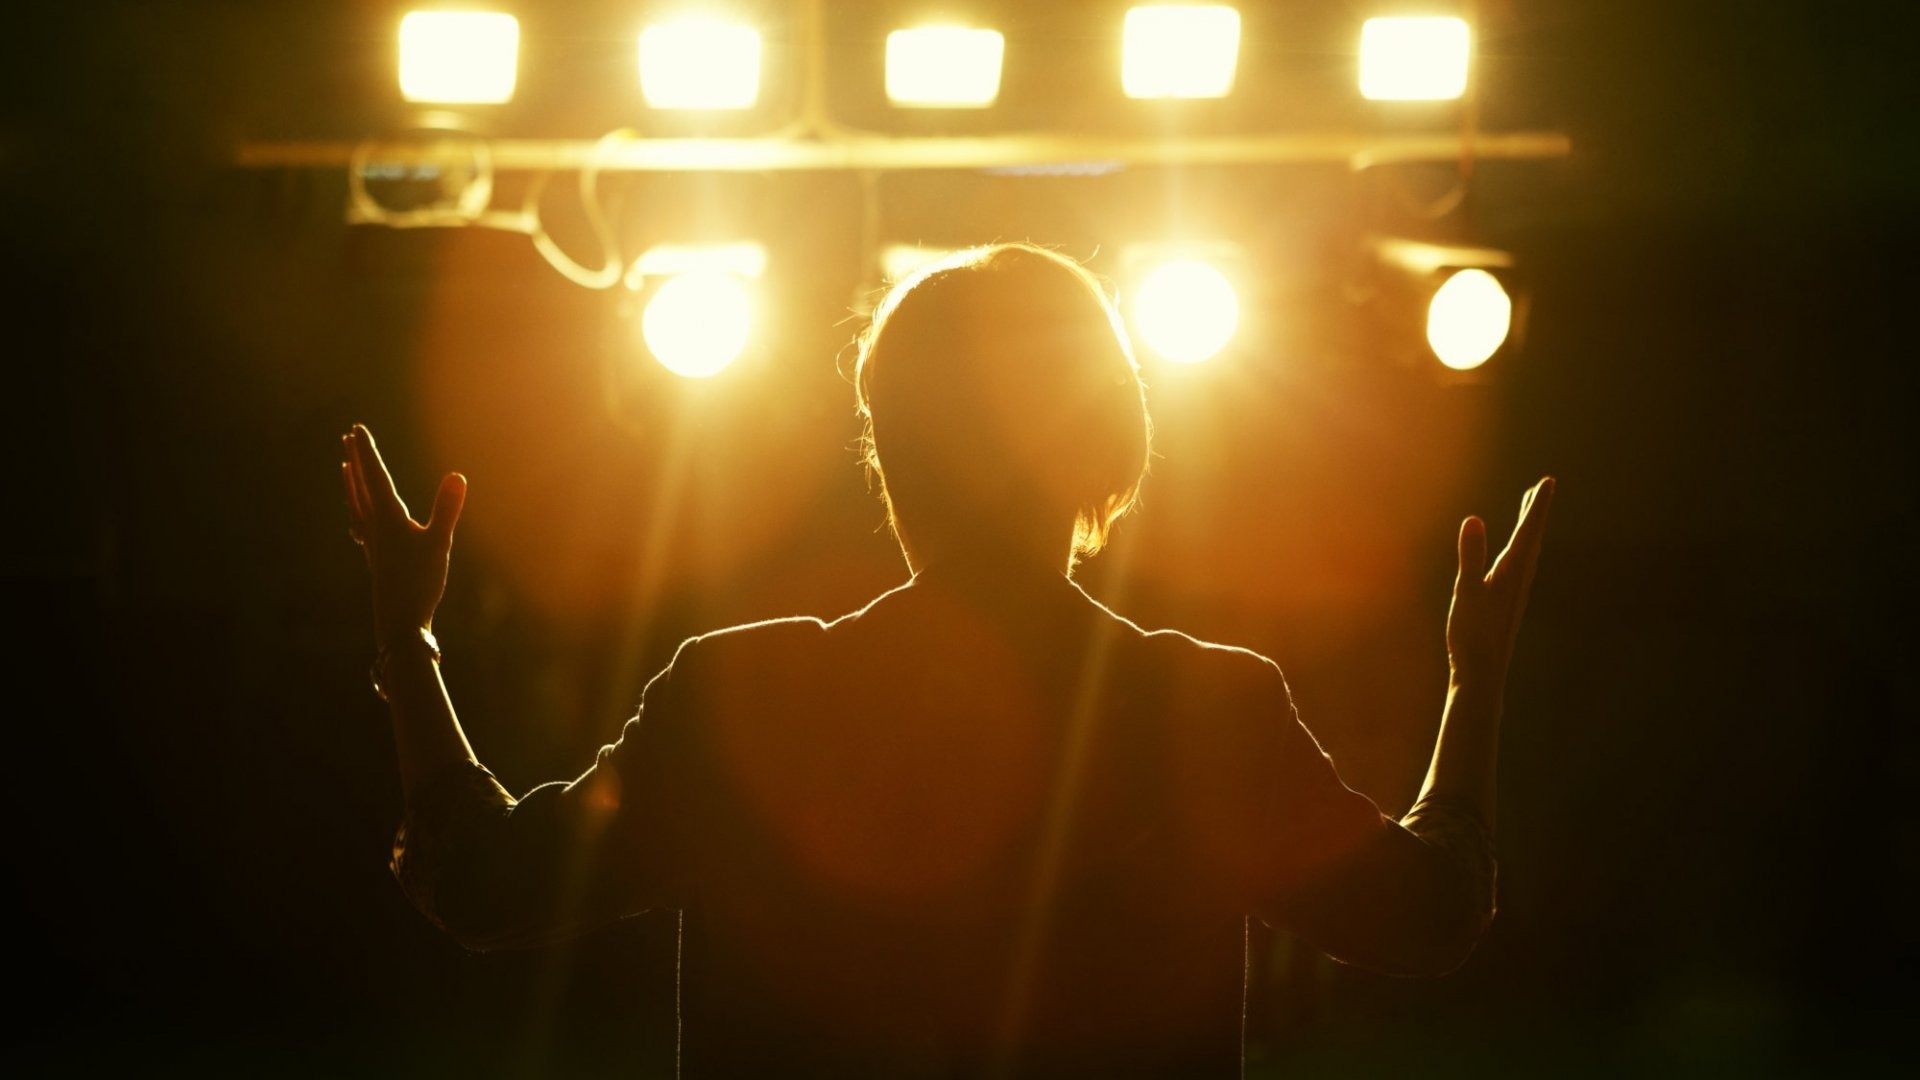 Troubleshooting TED: How to Avoid 3 Public Speaking Mistakes